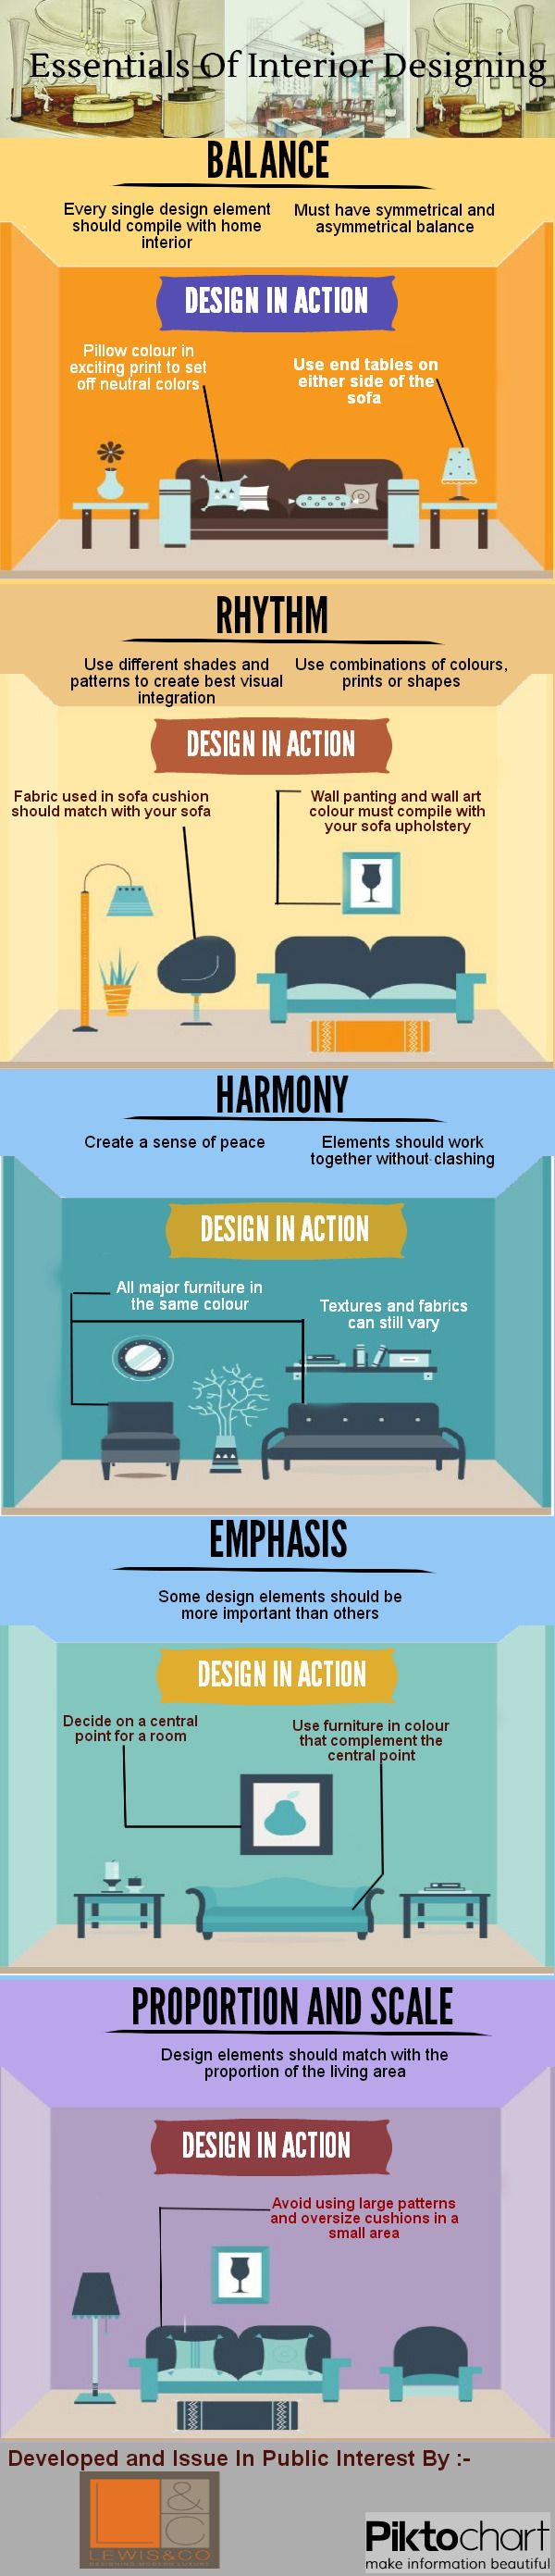 Essentials Of Interior Designing